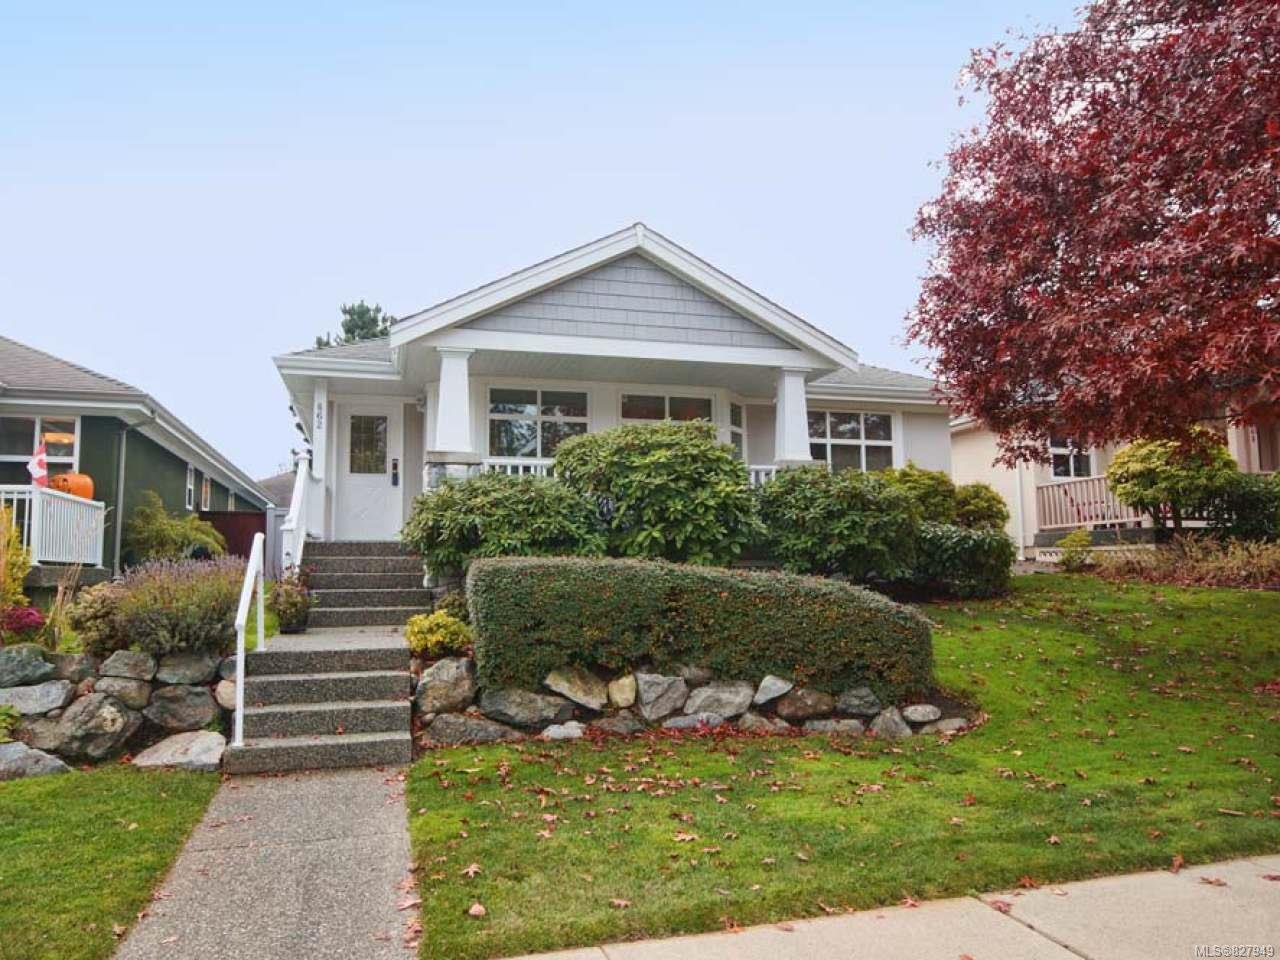 Main Photo: 862 STANHOPE ROAD in PARKSVILLE: PQ Parksville House for sale (Parksville/Qualicum)  : MLS®# 827949